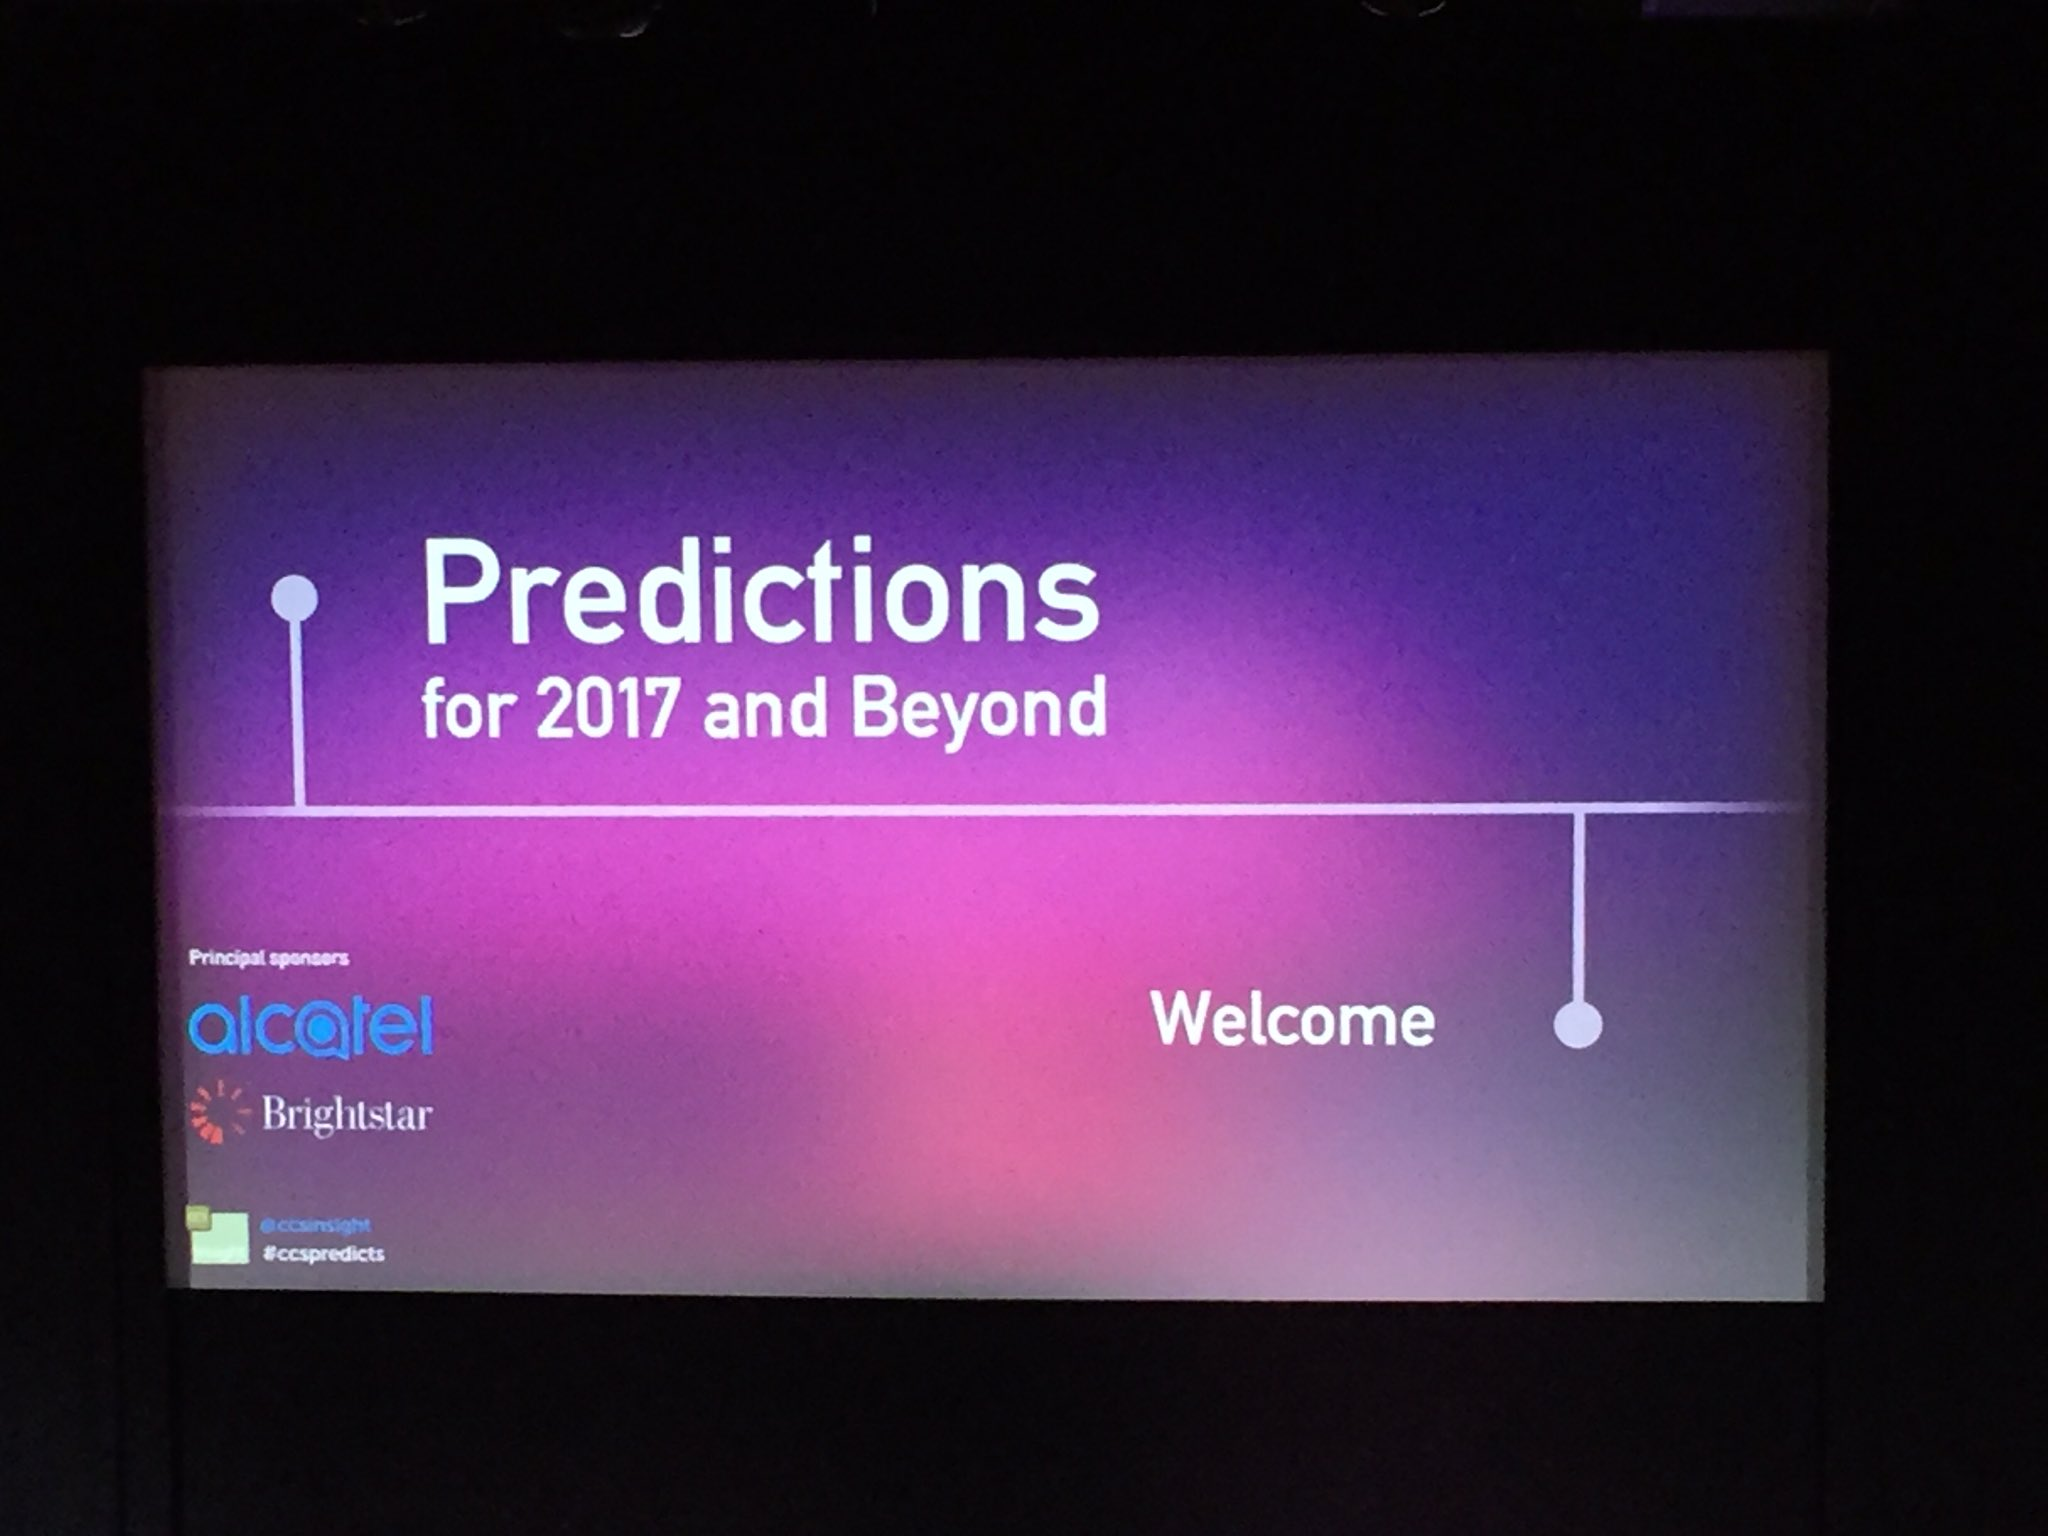 It's all kicking off at #ccspredicts - excited to hear what the future holds... https://t.co/YPxRRWSLX7